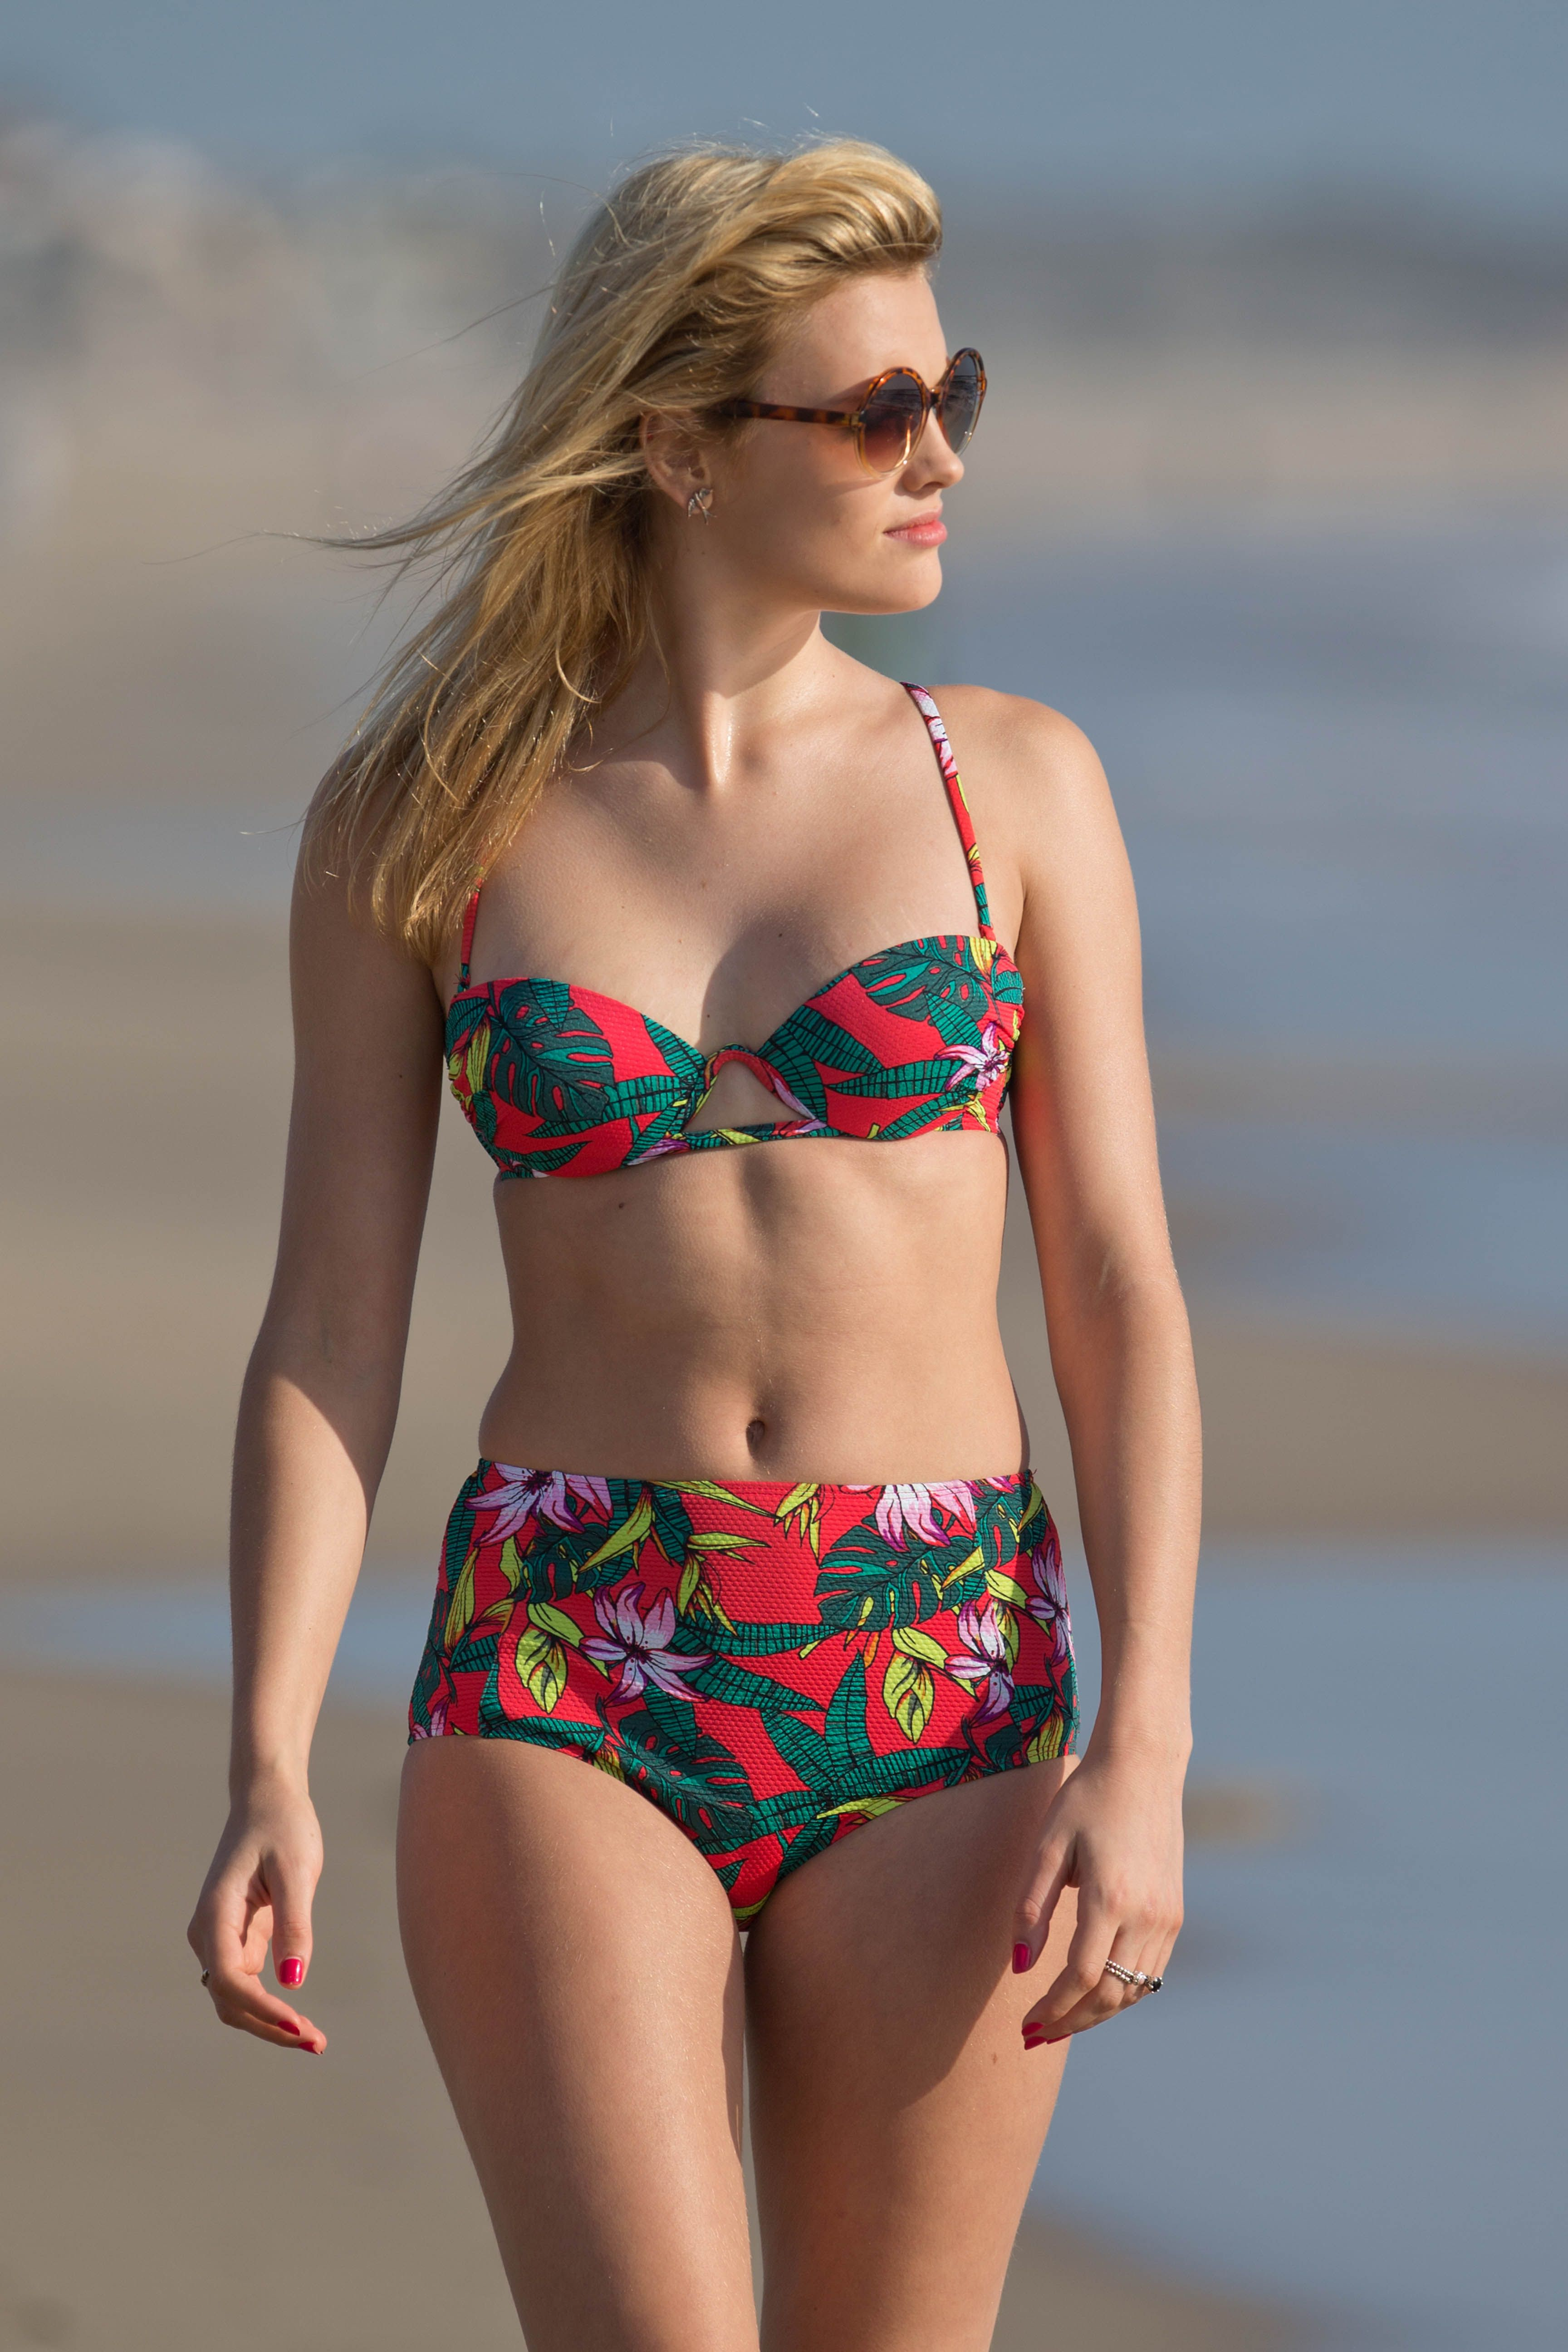 Ashley James en bikini sur la plage